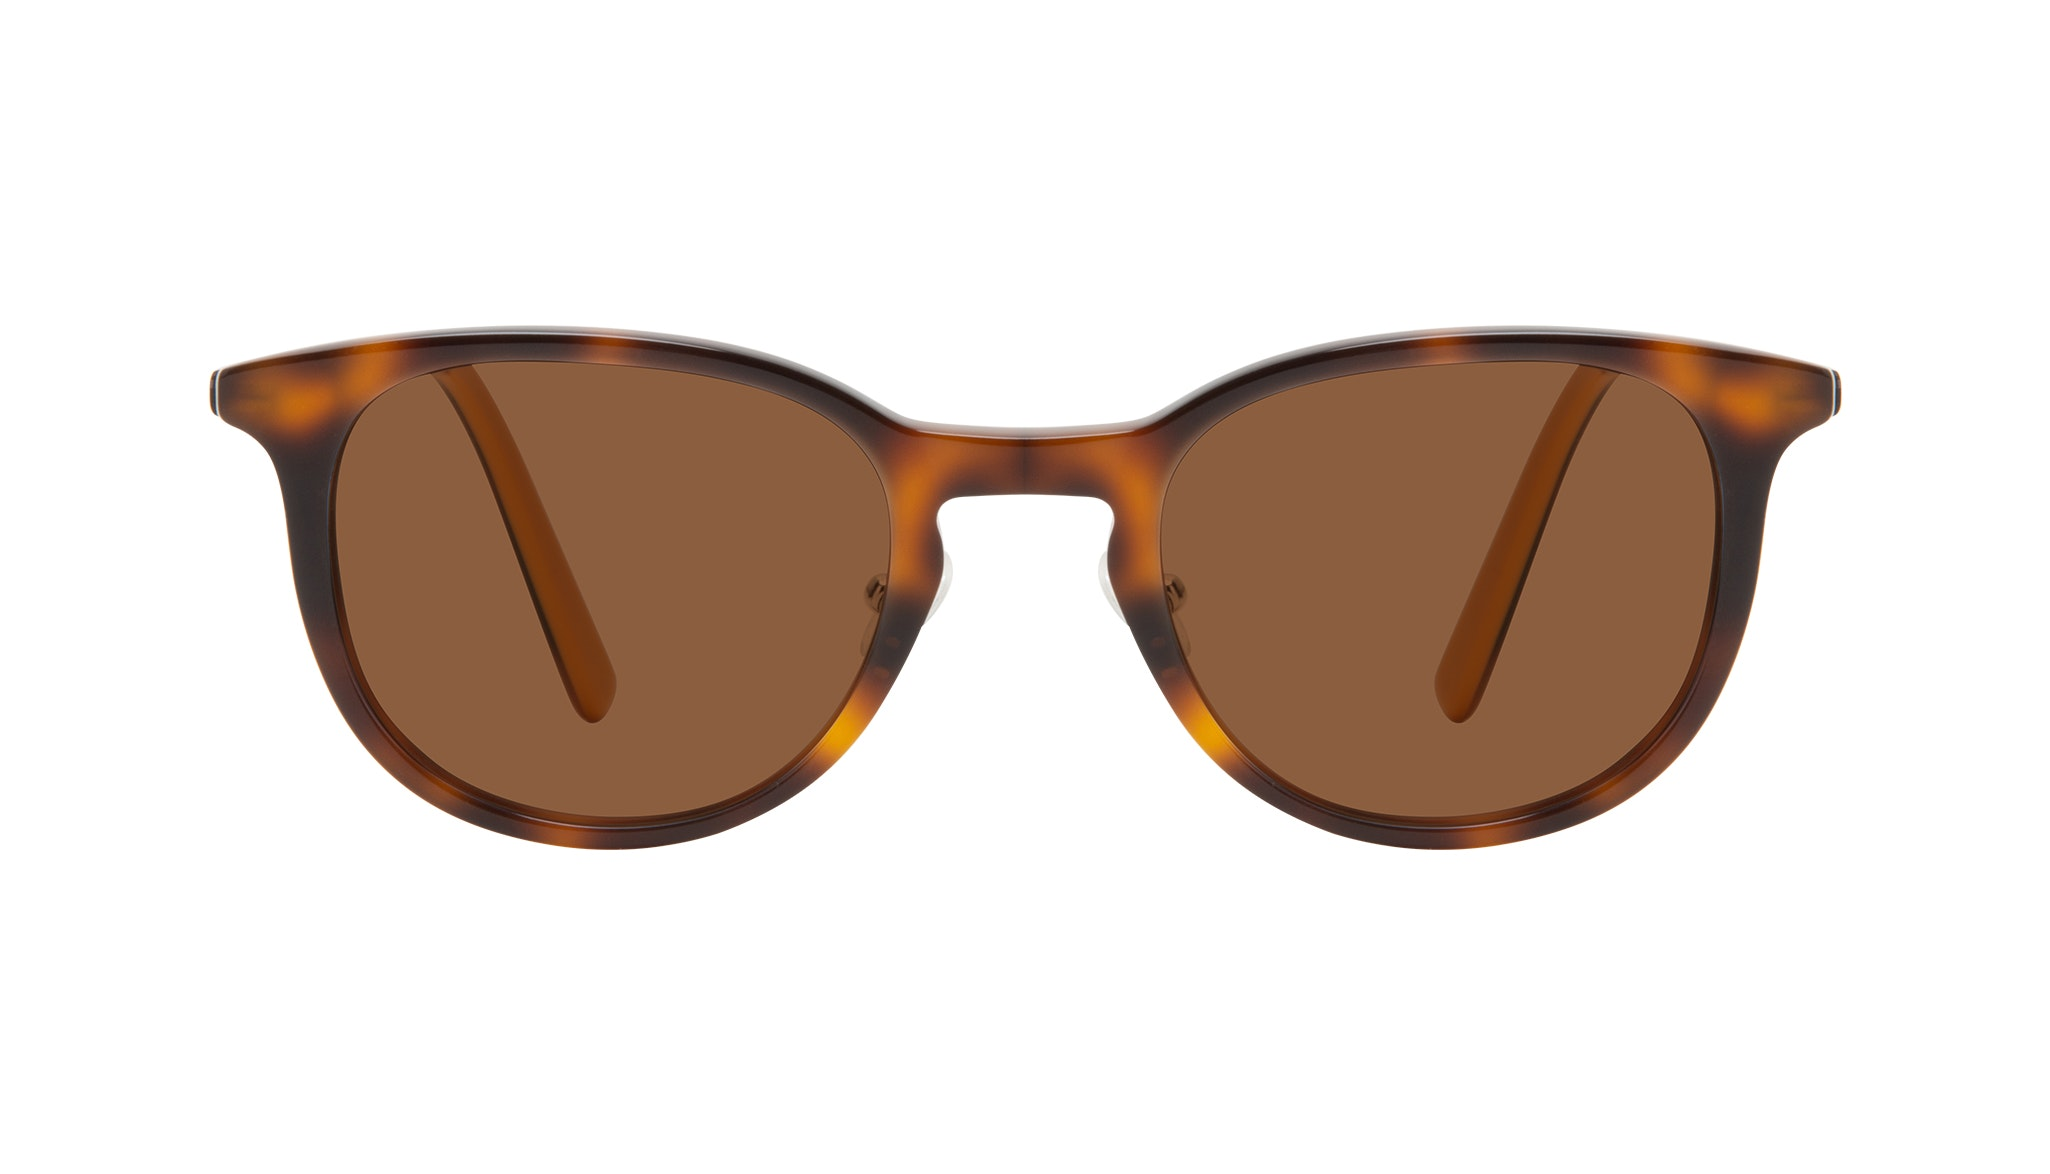 Affordable Fashion Glasses Round Sunglasses Men Coast Tortoise